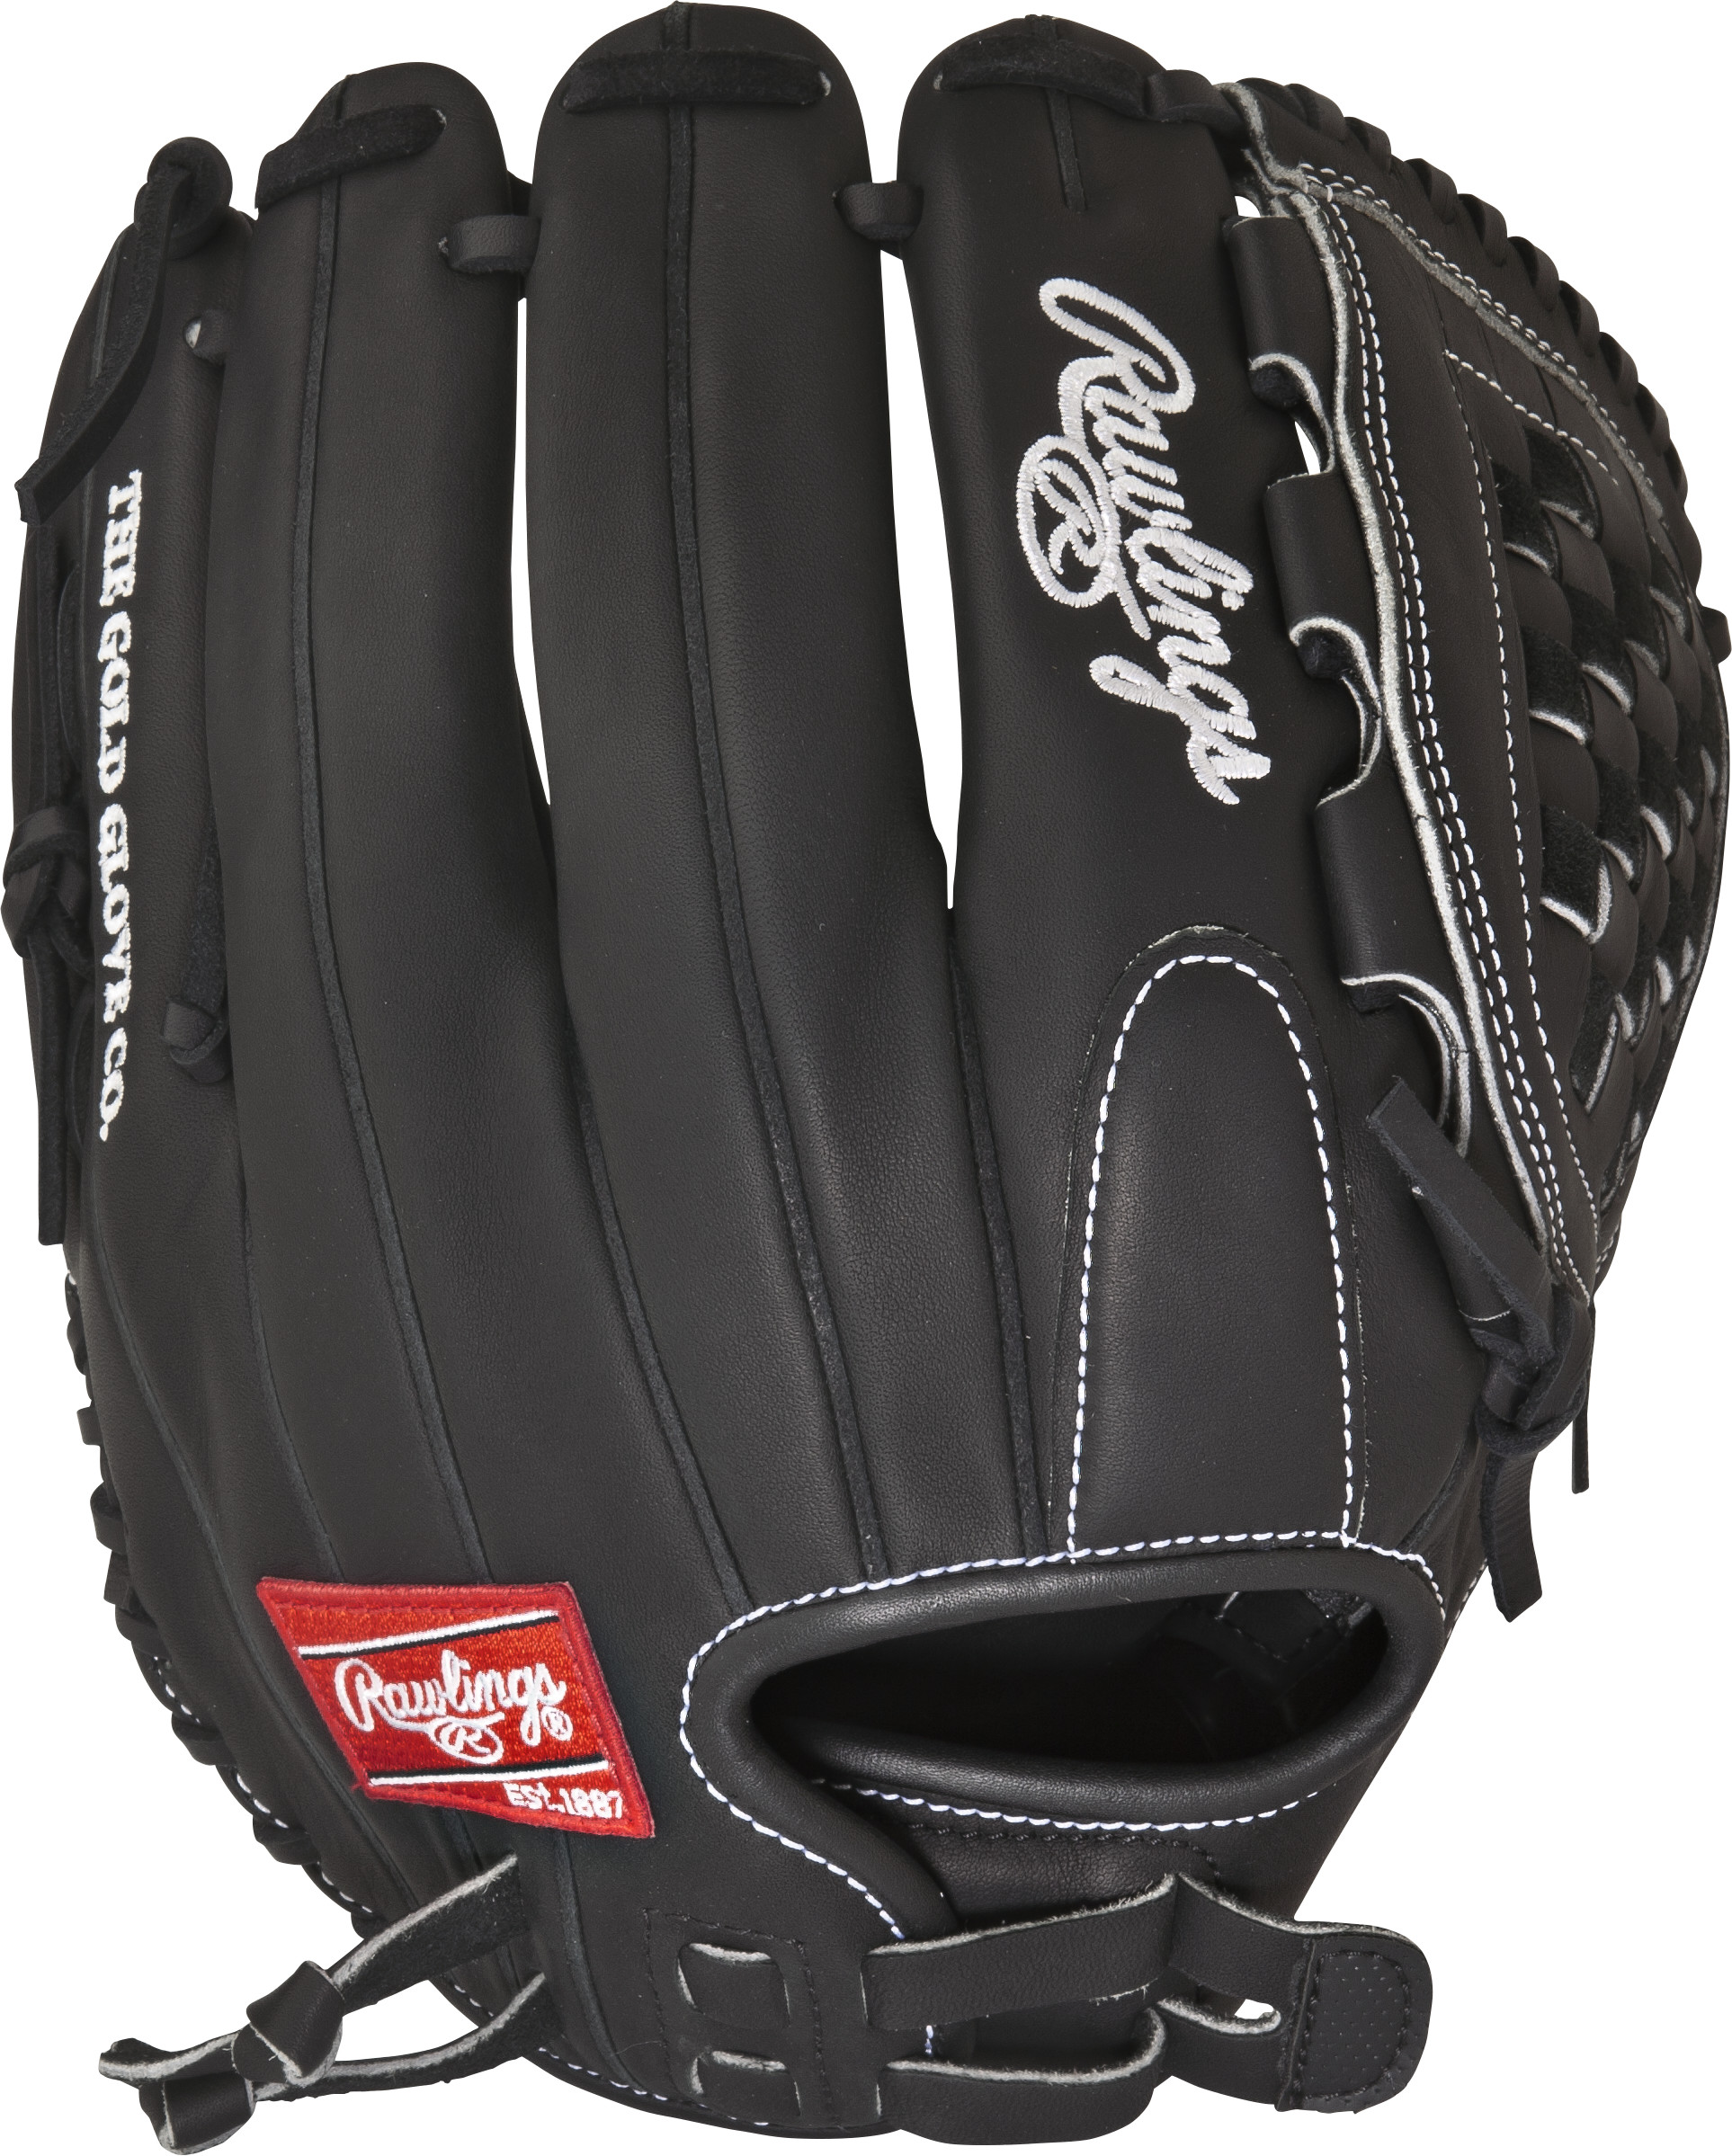 http://www.bestbatdeals.com/images/rawlingsgloves/PRO125SB-3B_back.jpg